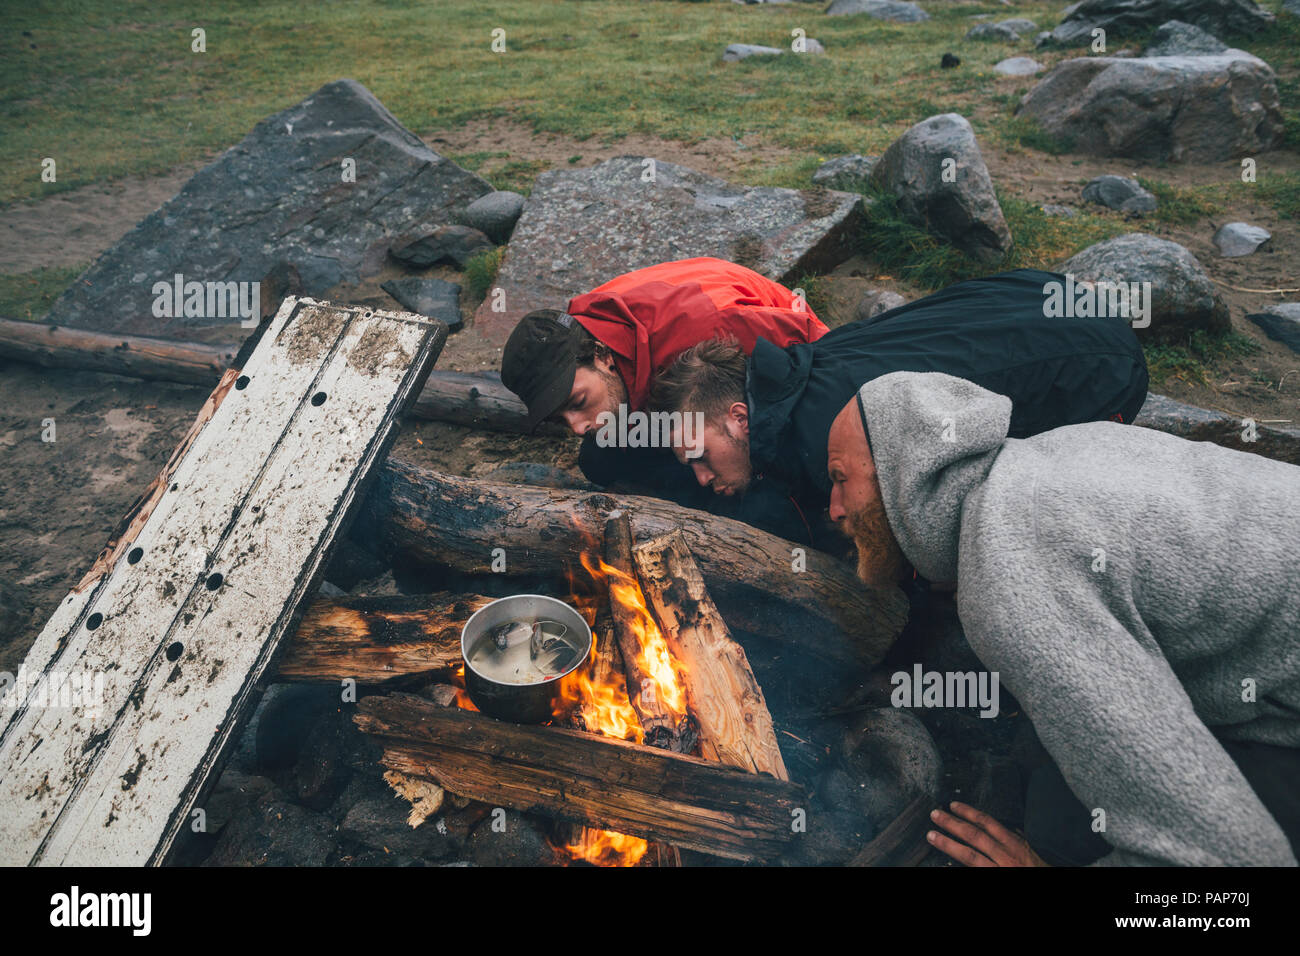 Norway, Lofoten, Moskenesoy, Three men fanning the flames of a camp fire at Bunes Beach - Stock Image